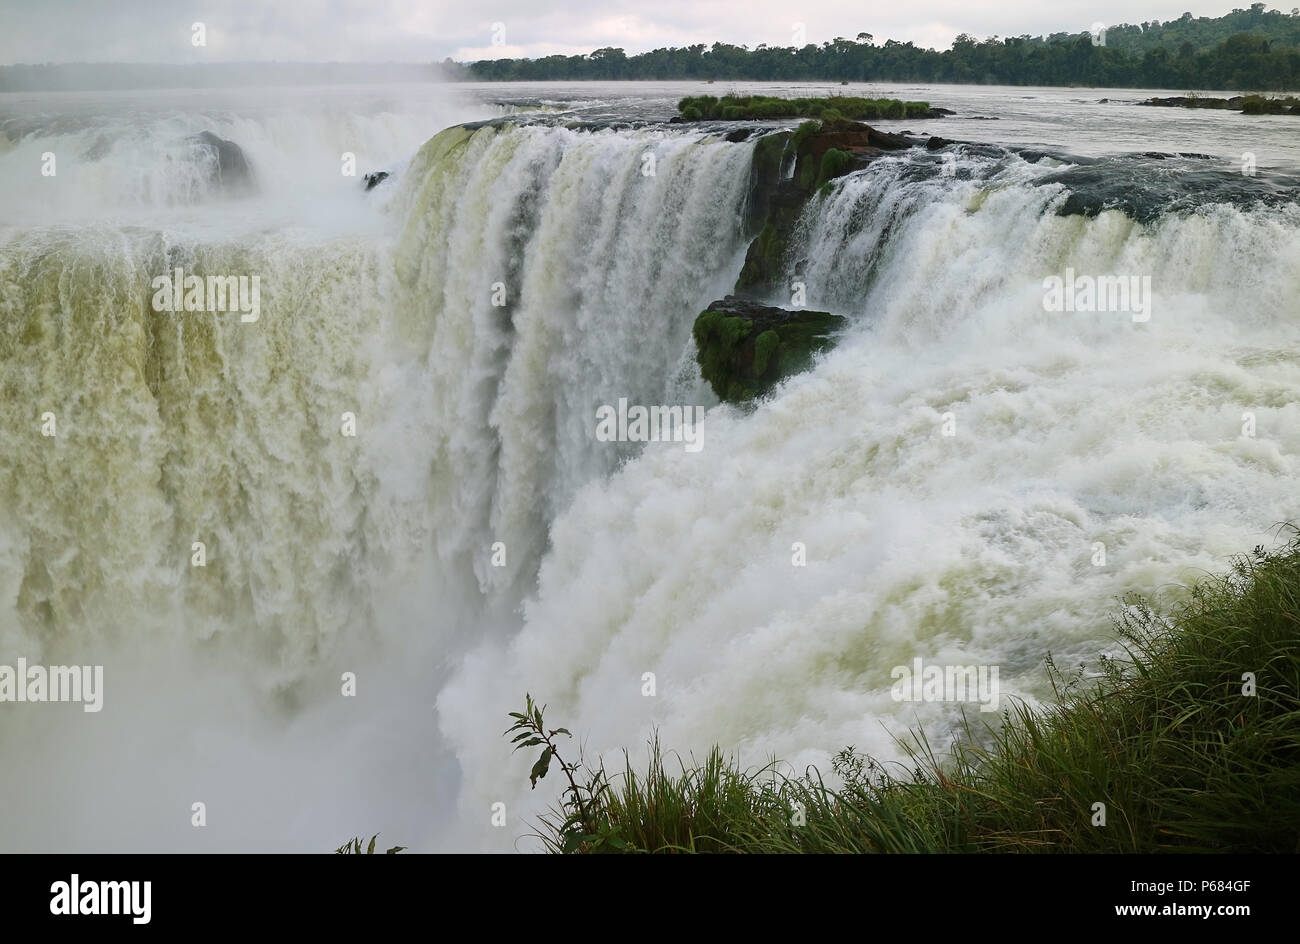 Awesome view of the Devil's Throat area of Iguazu Falls at Argentinian side, Misiones province, Argentina, South America - Stock Image